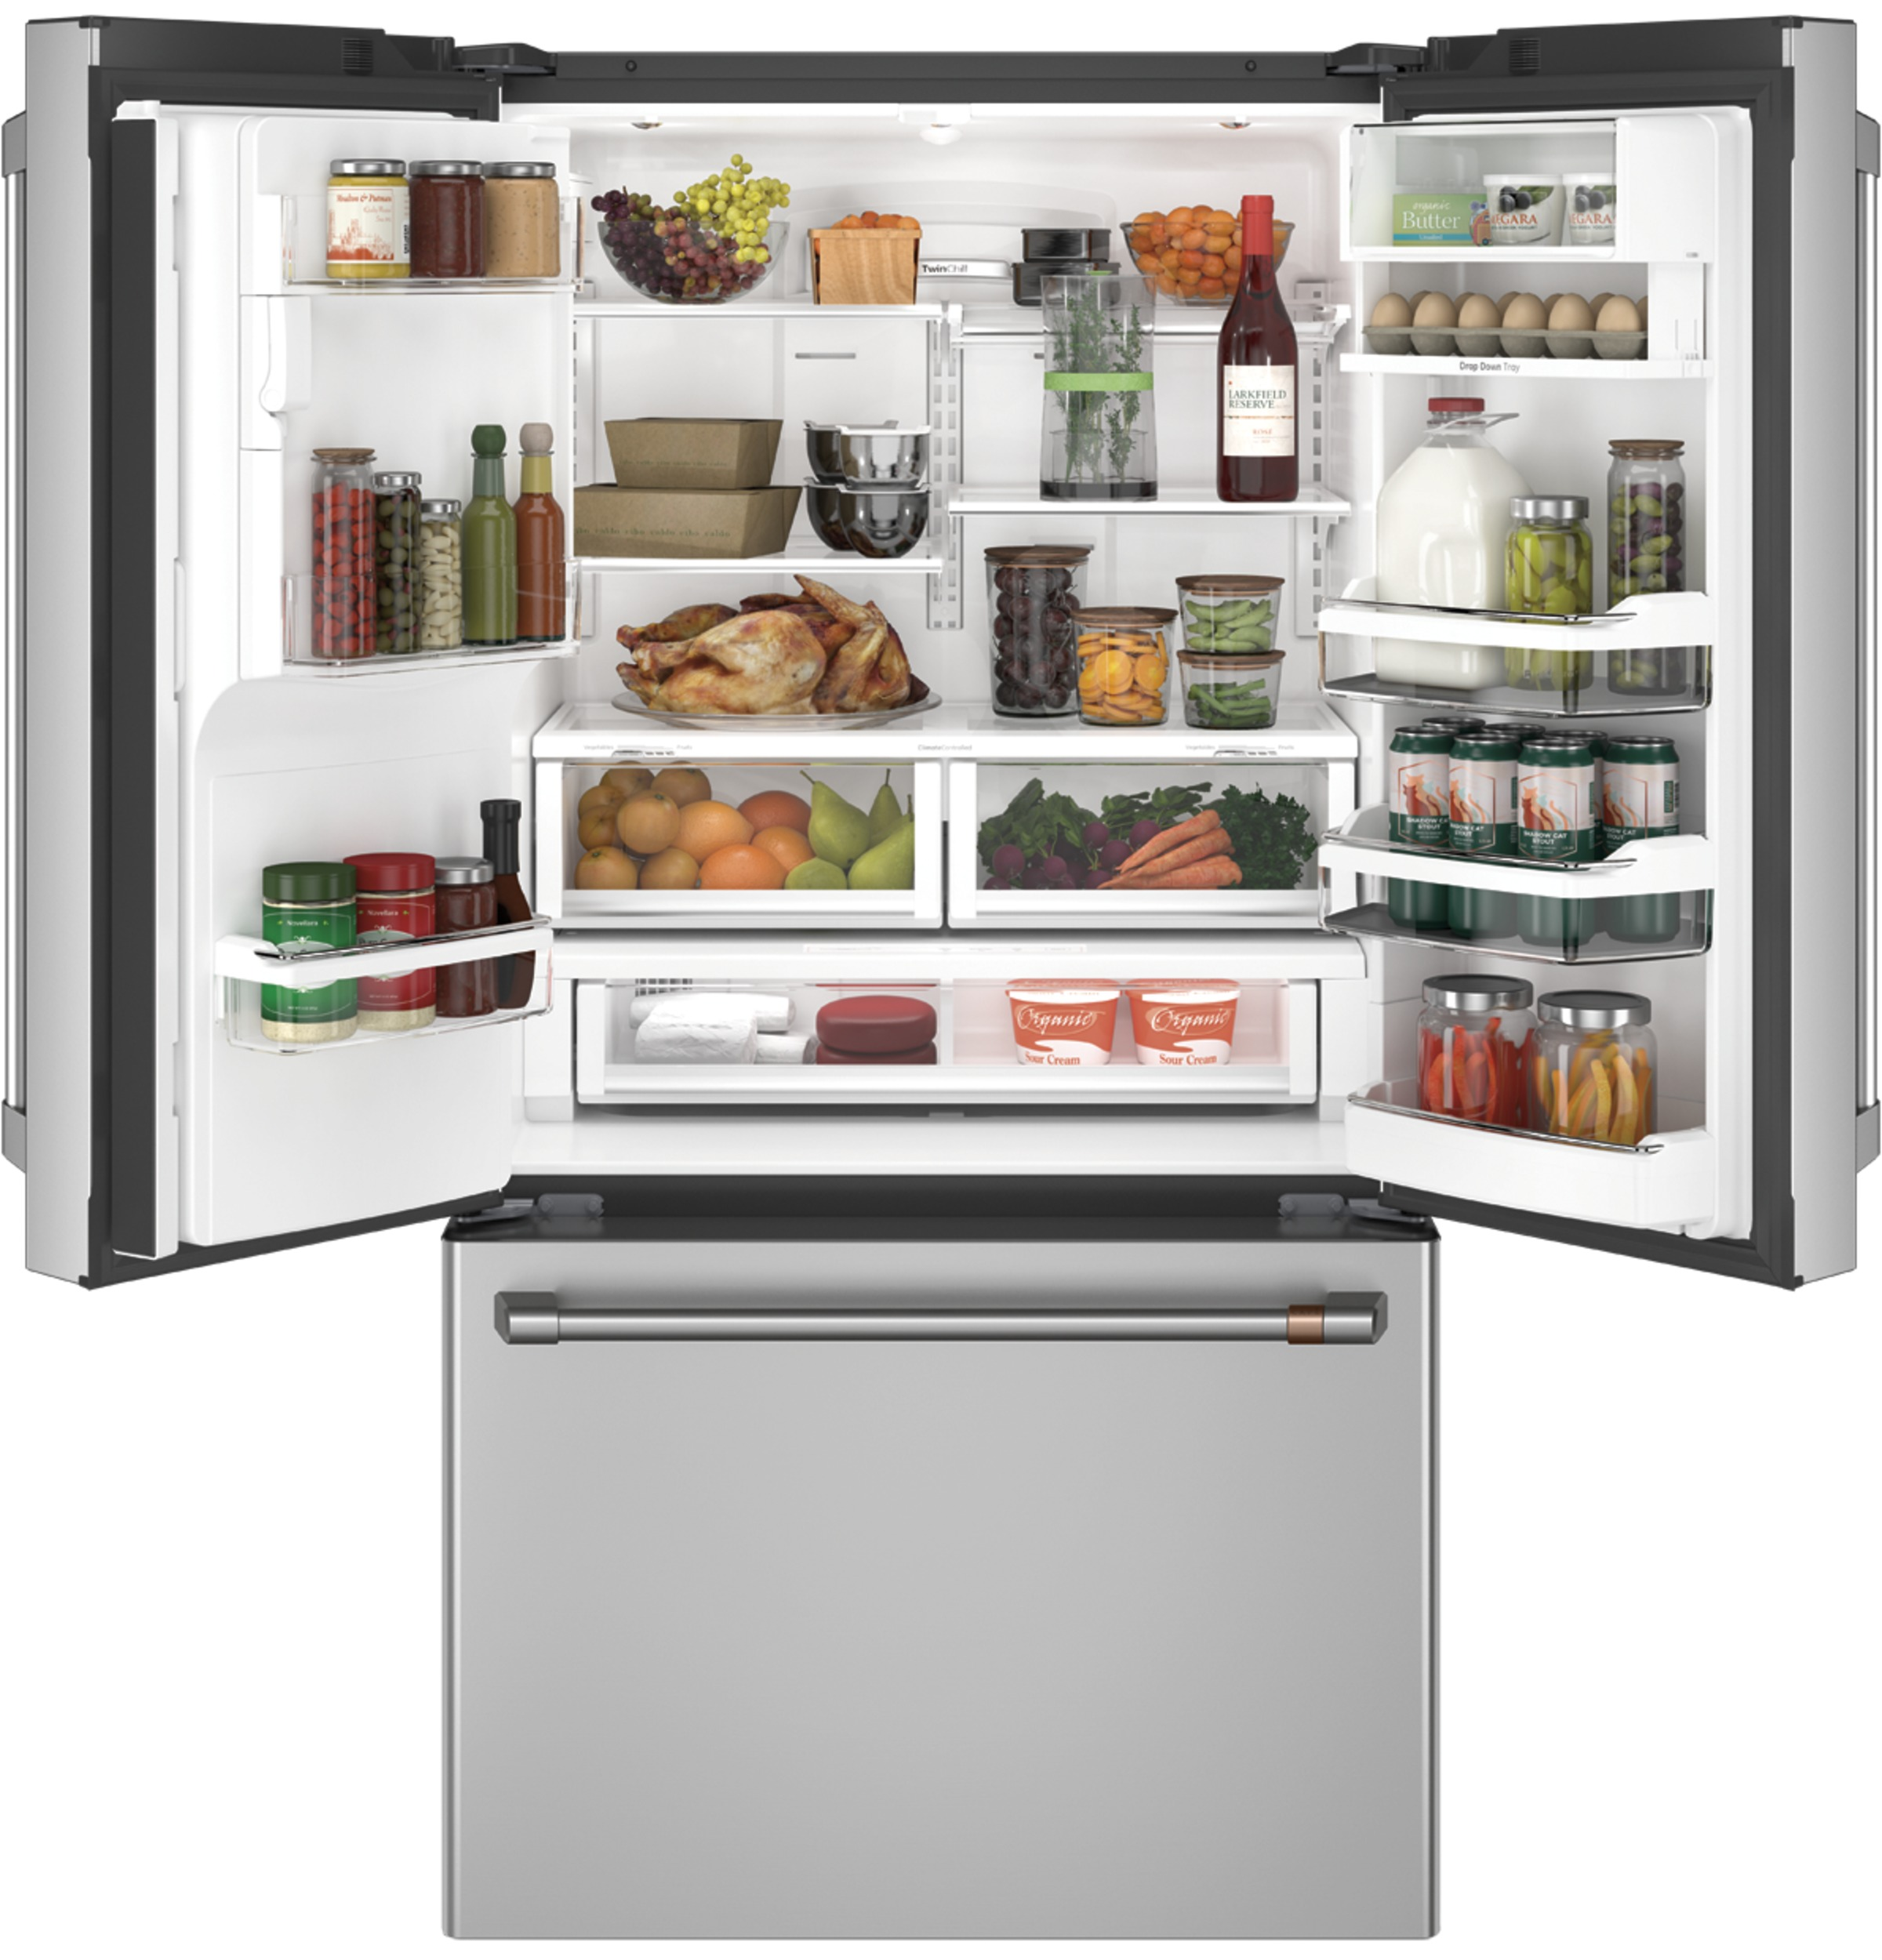 Model: CYE22TP2MS1 | Café™ ENERGY STAR® 22.2 Cu. Ft. Counter-Depth French-Door Refrigerator with Hot Water Dispenser